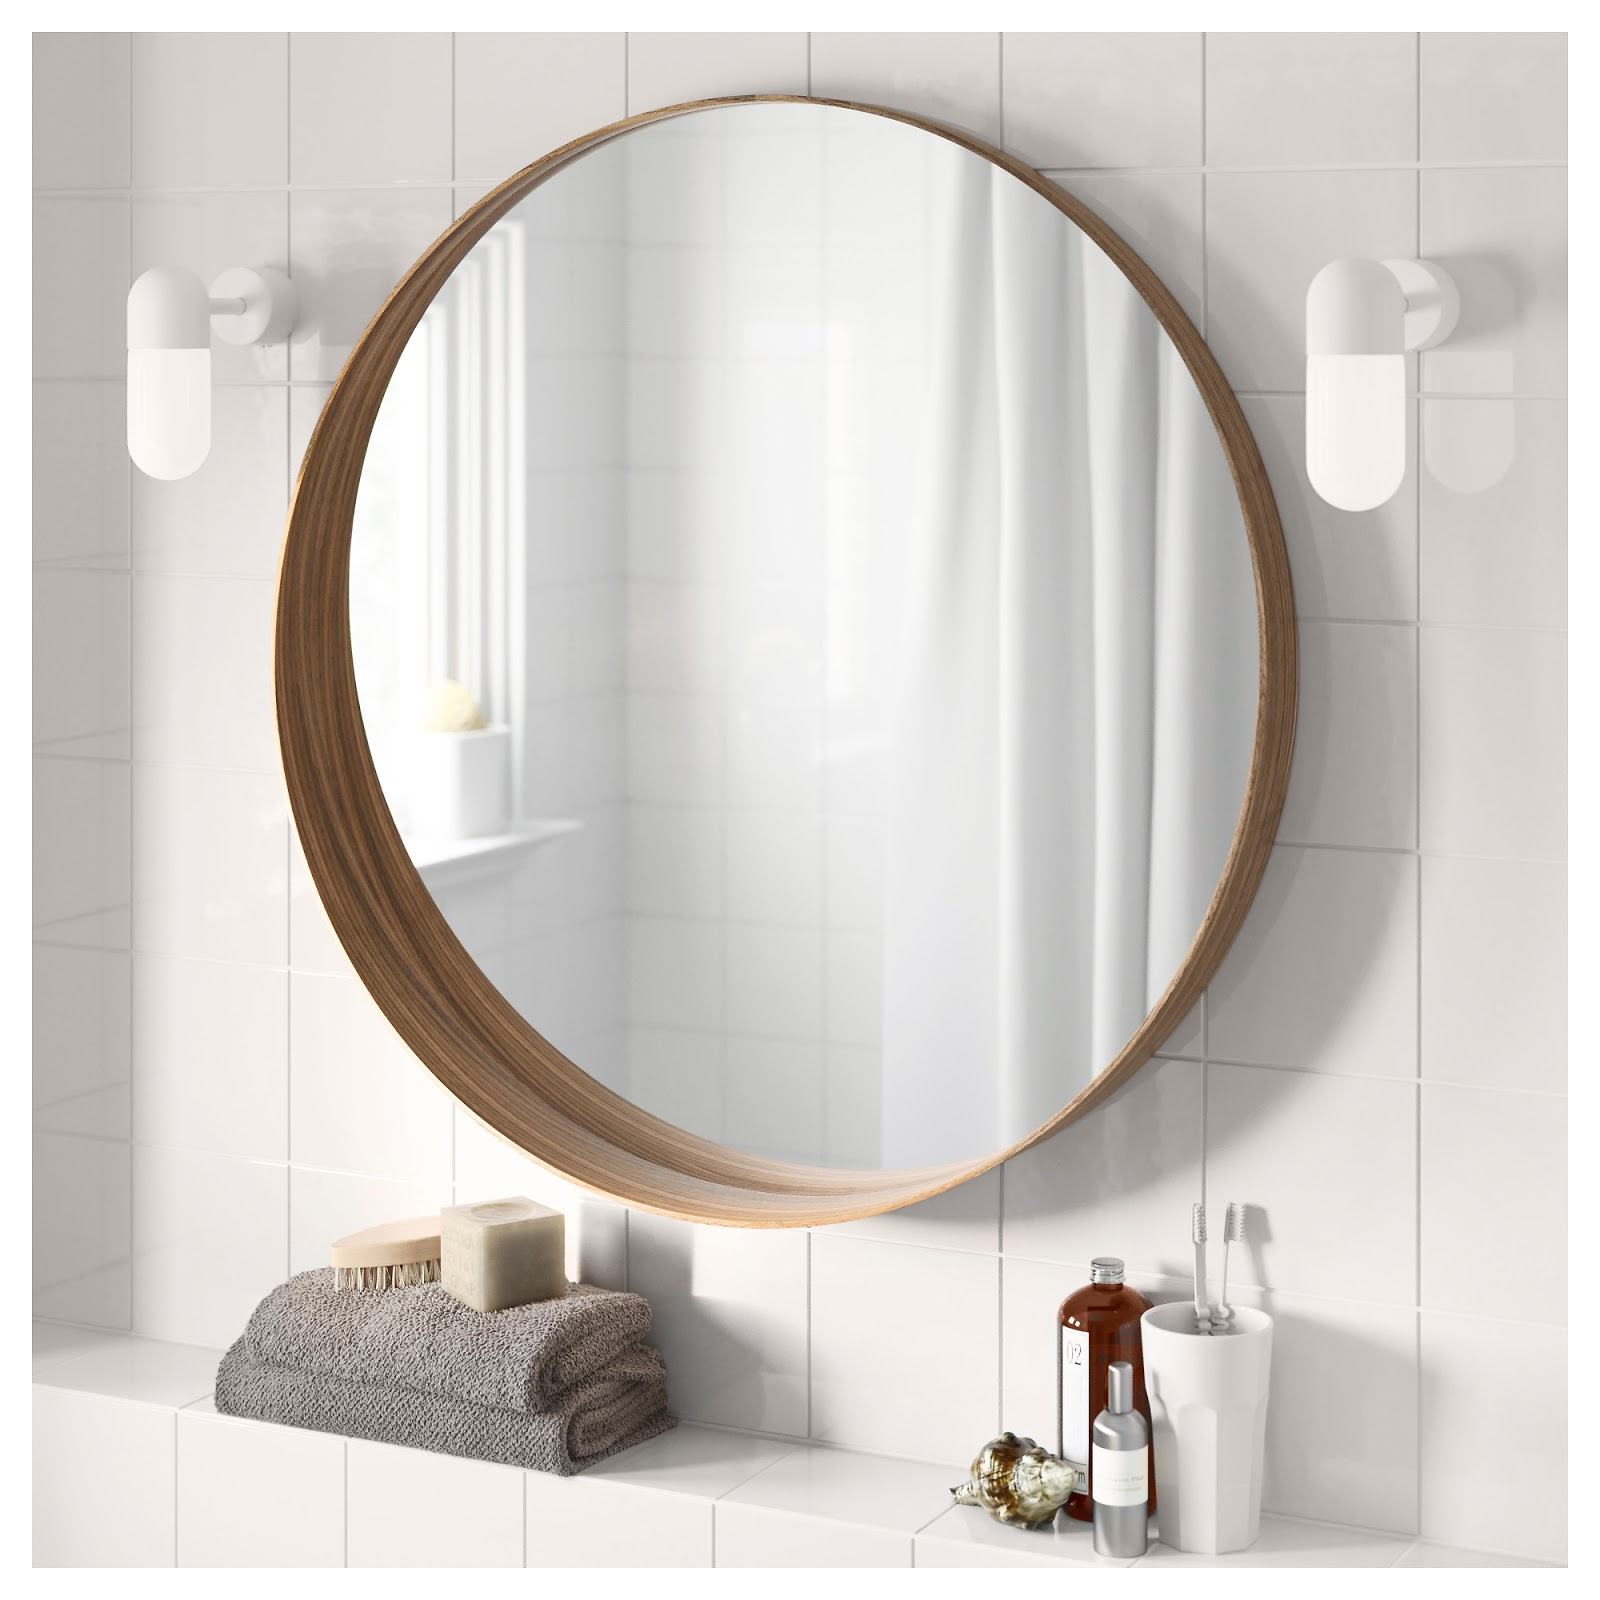 Master bathroom reno plans from thrifty decor chick for Miroir salle de bain led